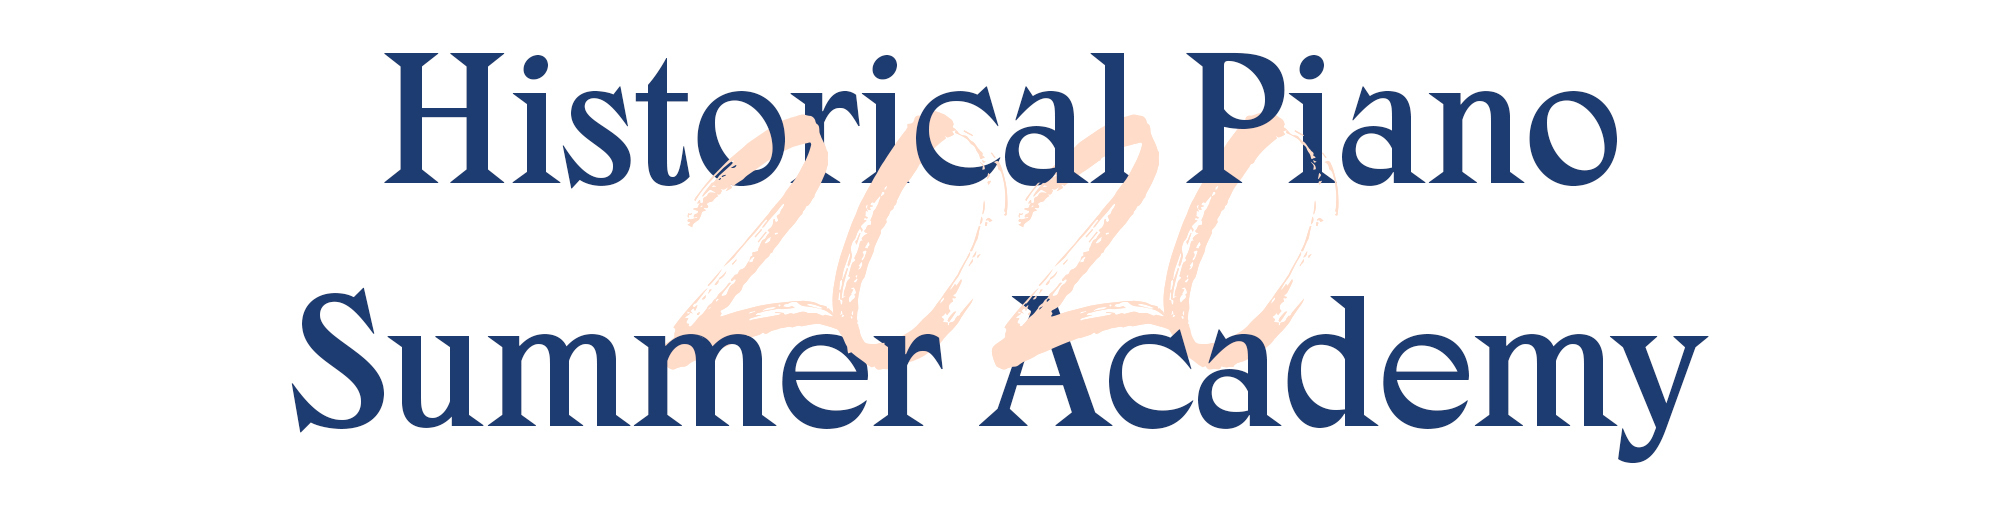 Orpheus Institute Historical Piano Summer Academy 2020